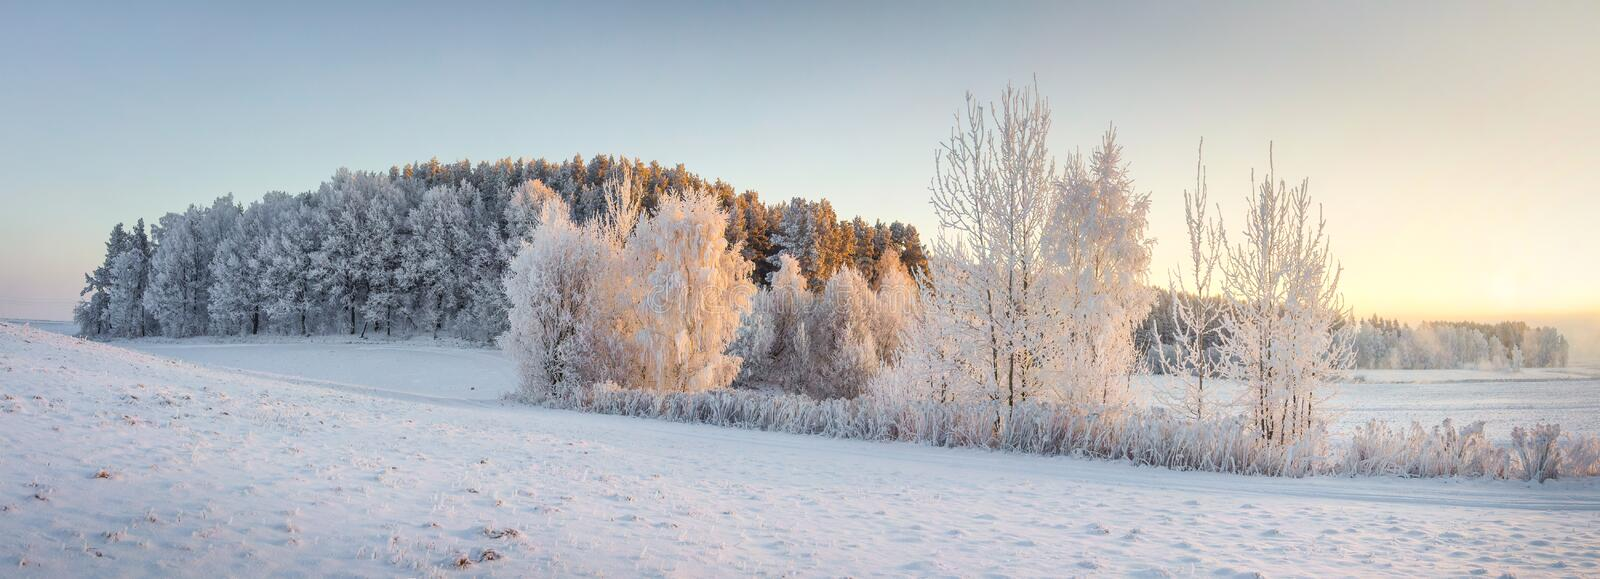 Panorama of winter nature landscape. Panoramic view on frosty trees on snowy meadow in morning with warm yellow sunlight. Christmas background. Xmas time royalty free stock photography